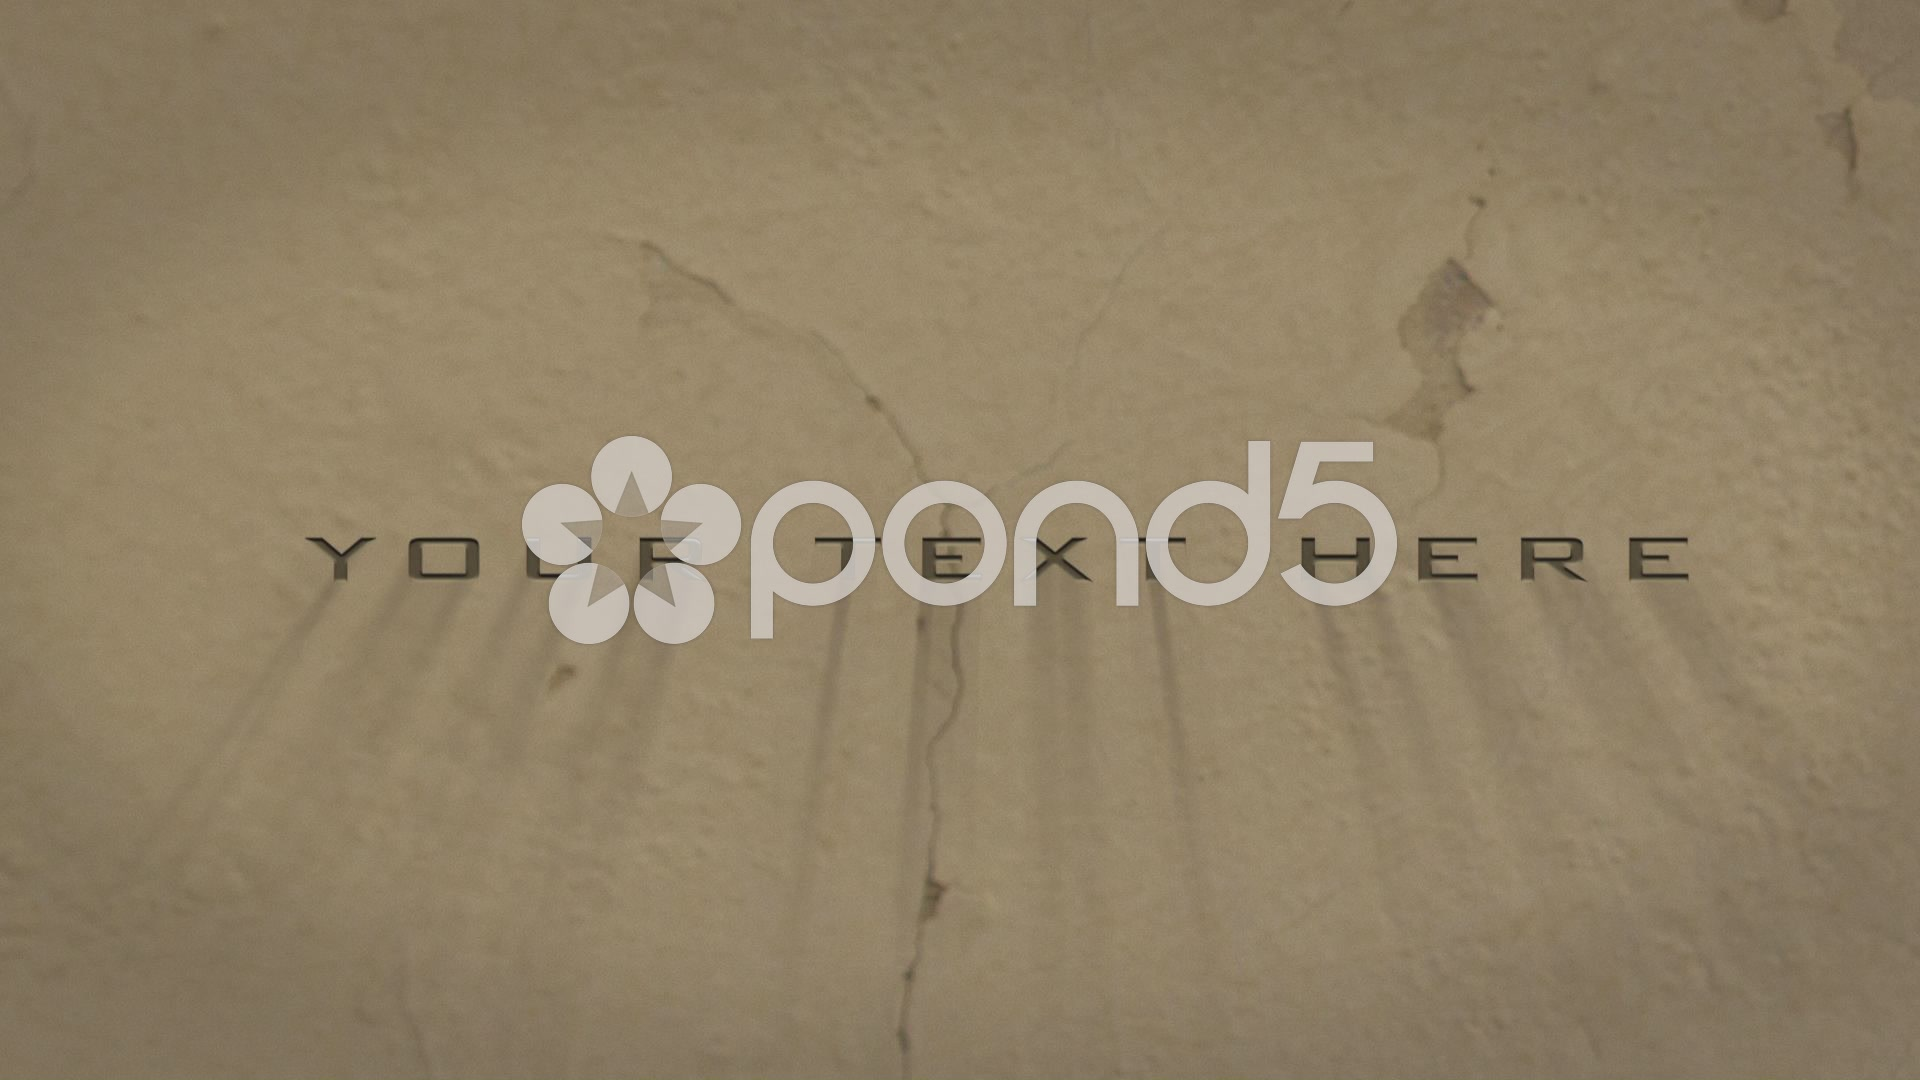 After Effects Project - Pond5 texture text 42552219